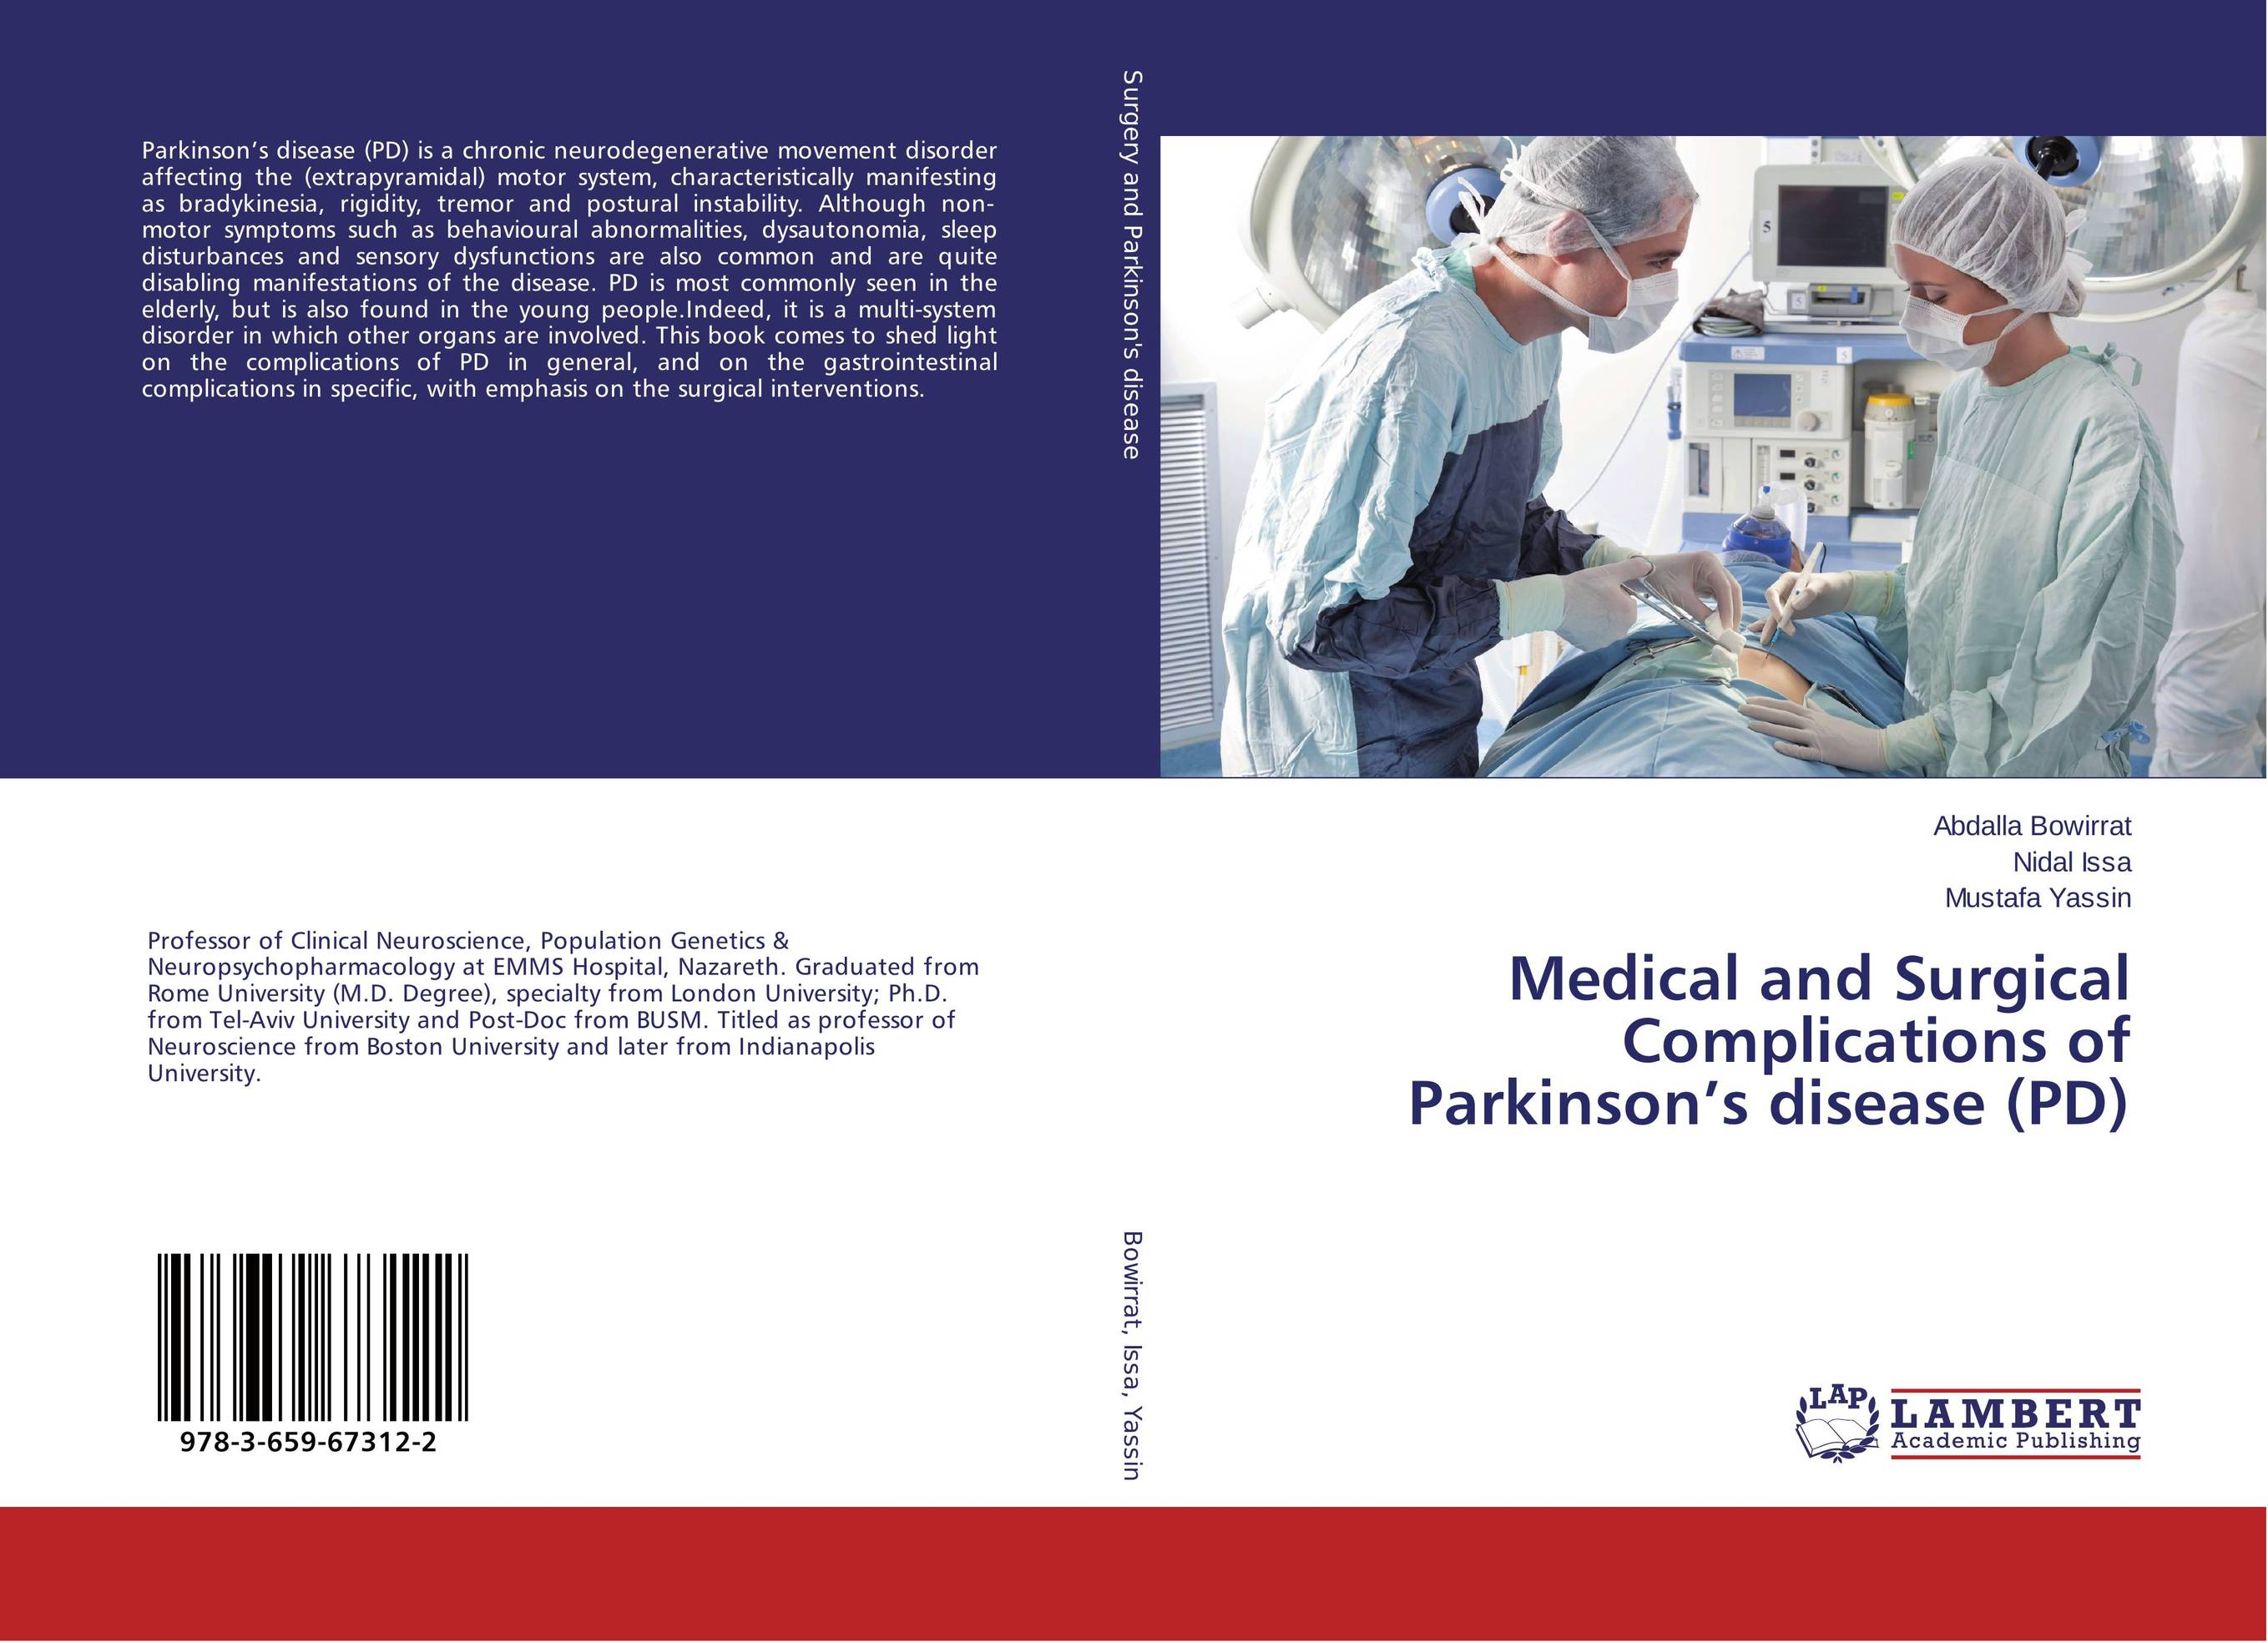 Medical and Surgical Complications of Parkinson's disease (PD) bhartrihari pandiya and ruchi yadav microarray gene analysis on parkinson's disease by r